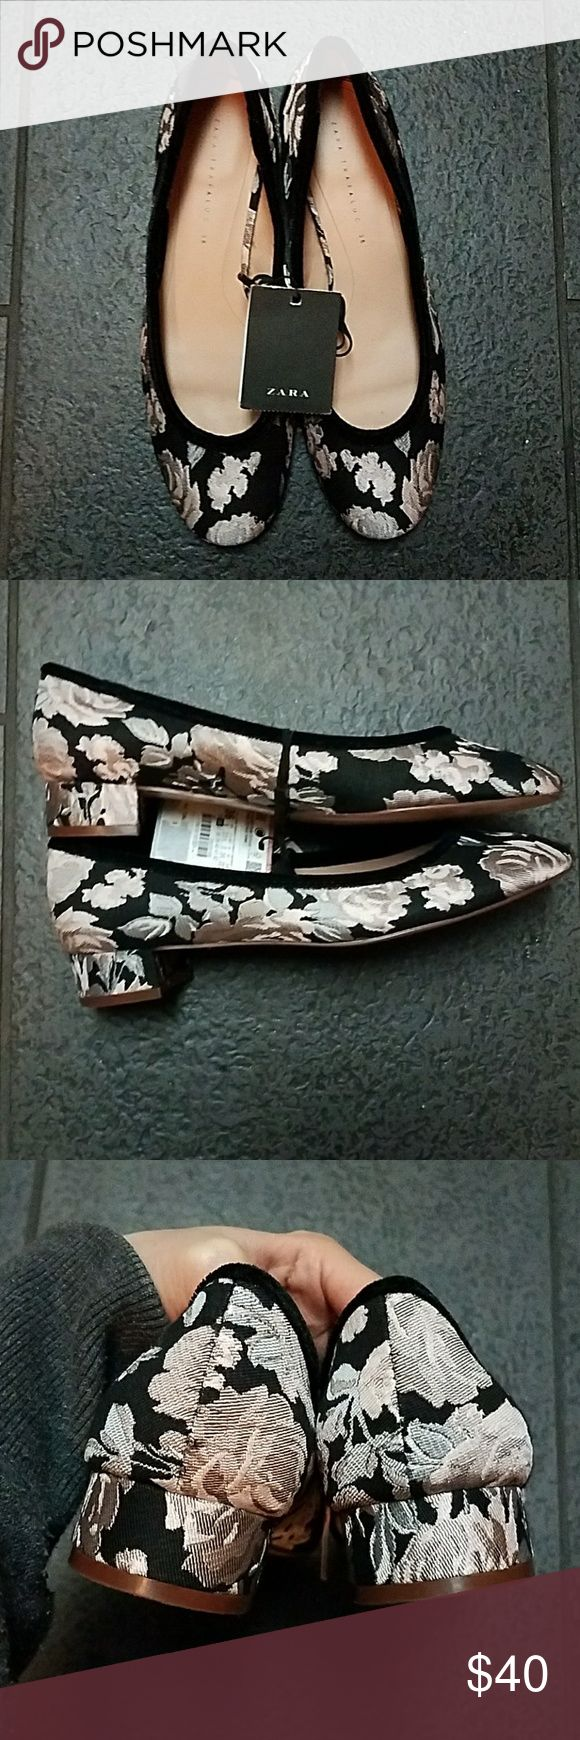 Last chance!Zara Floral Flats with Velvet Trim Nwt! Zara Floral Flats with Velvet Trim  -Beautiful Flats -size 6 Zara Shoes Flats & Loafers